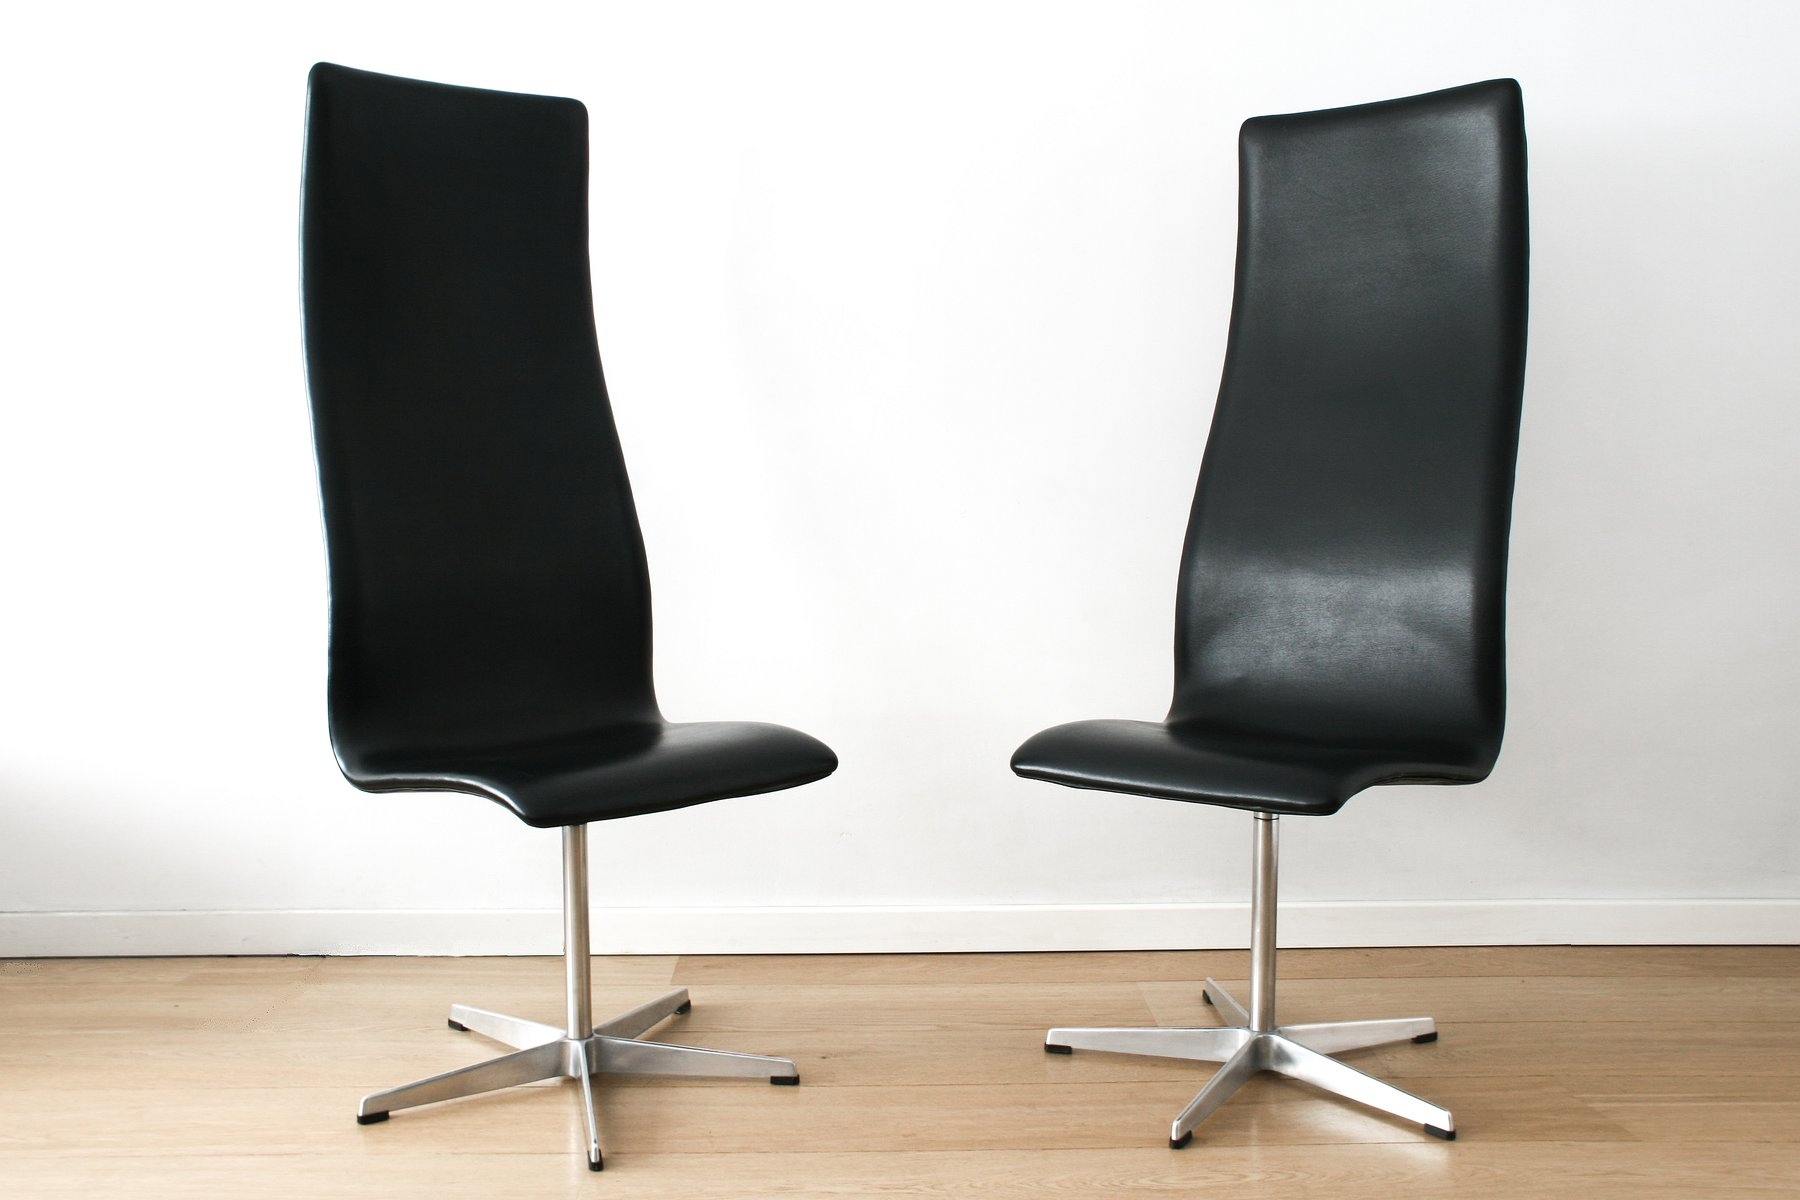 3172 Oxford Chairs by Arne Jacobson for Fritz Hansen Set of 2 for